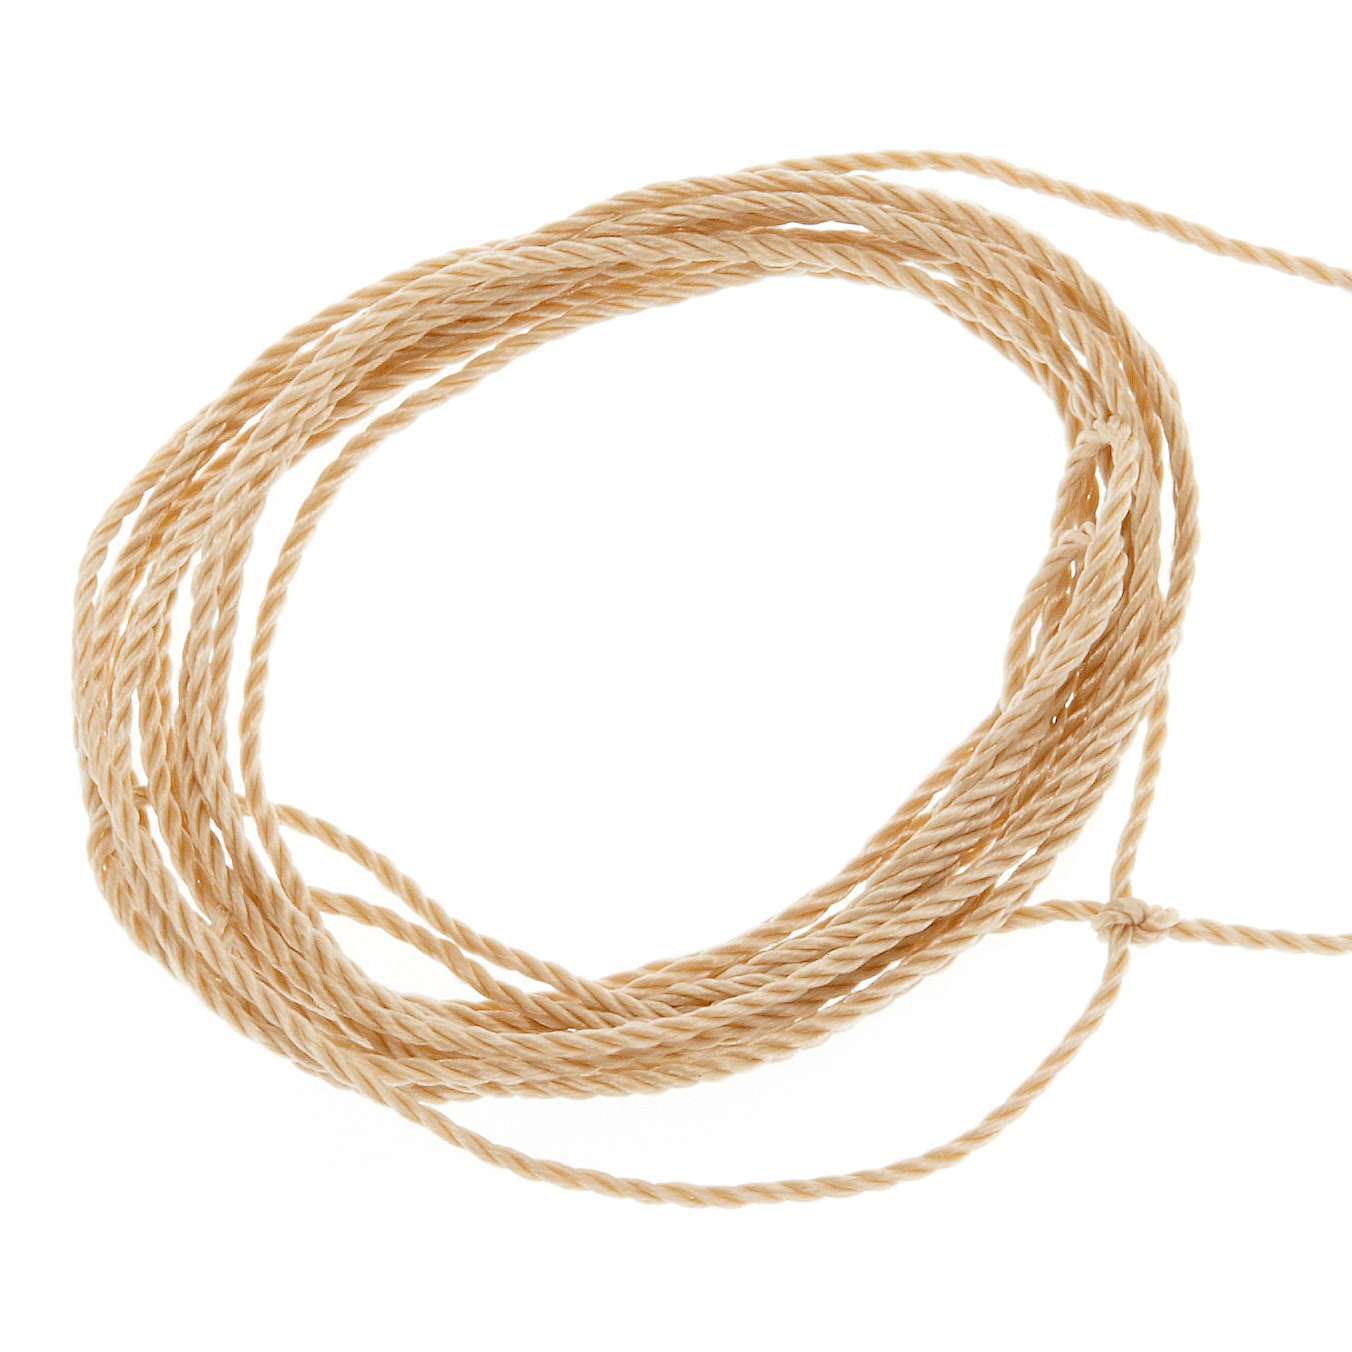 Beige wire for making rosaries 4